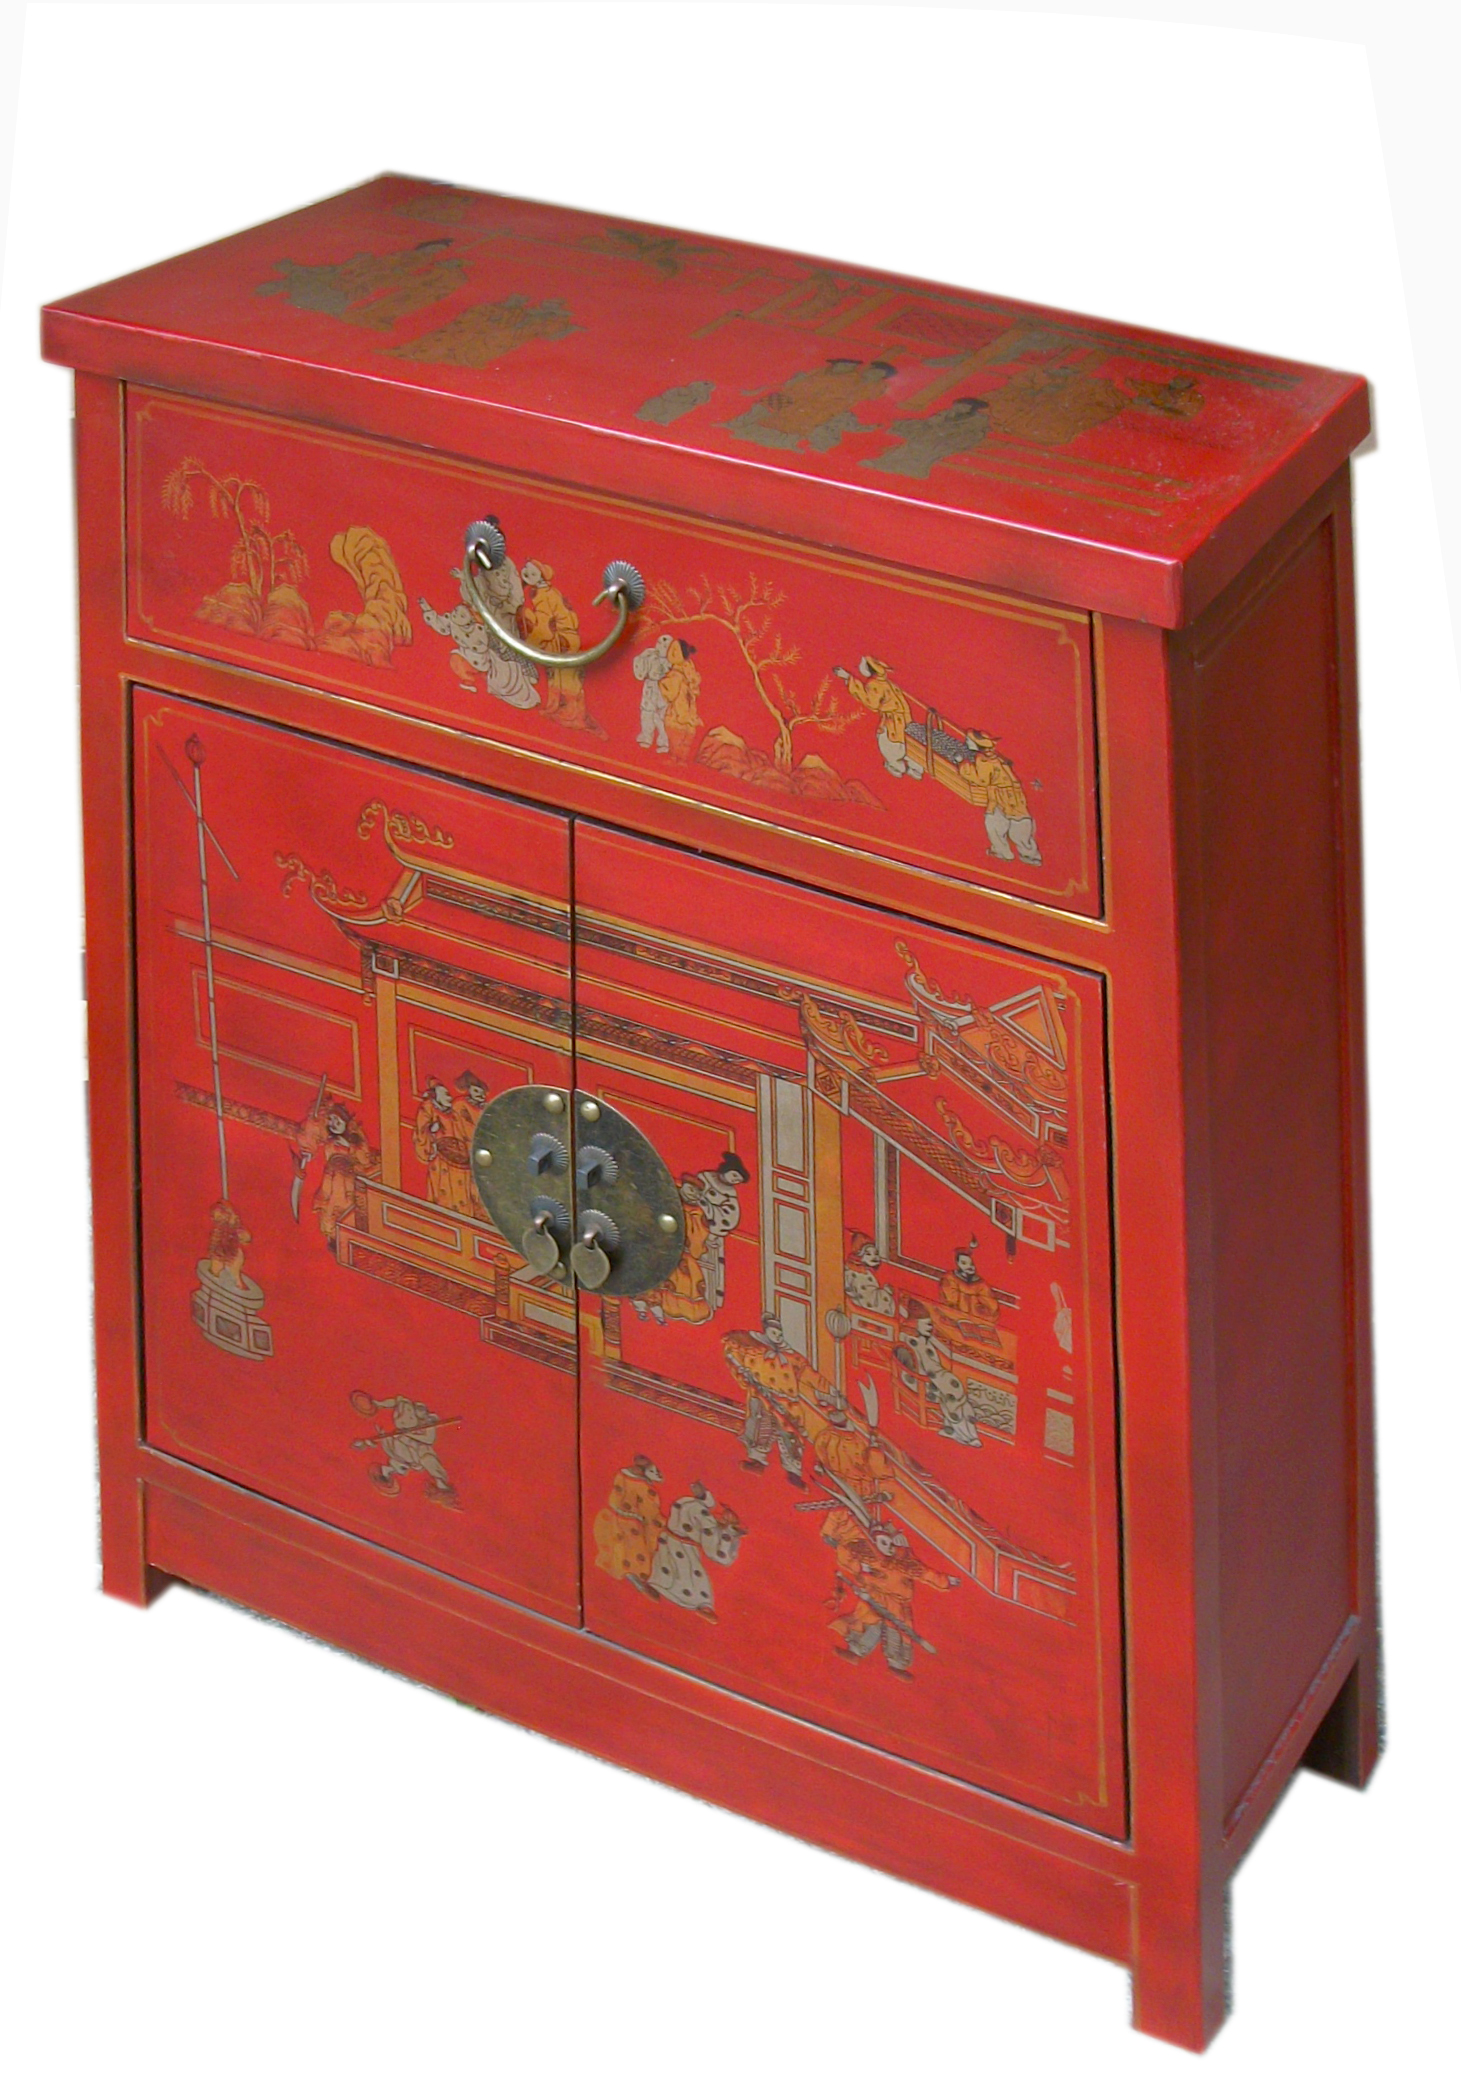 meuble de rangement chinois rouge collections collection cit xian magie d 39 asie. Black Bedroom Furniture Sets. Home Design Ideas